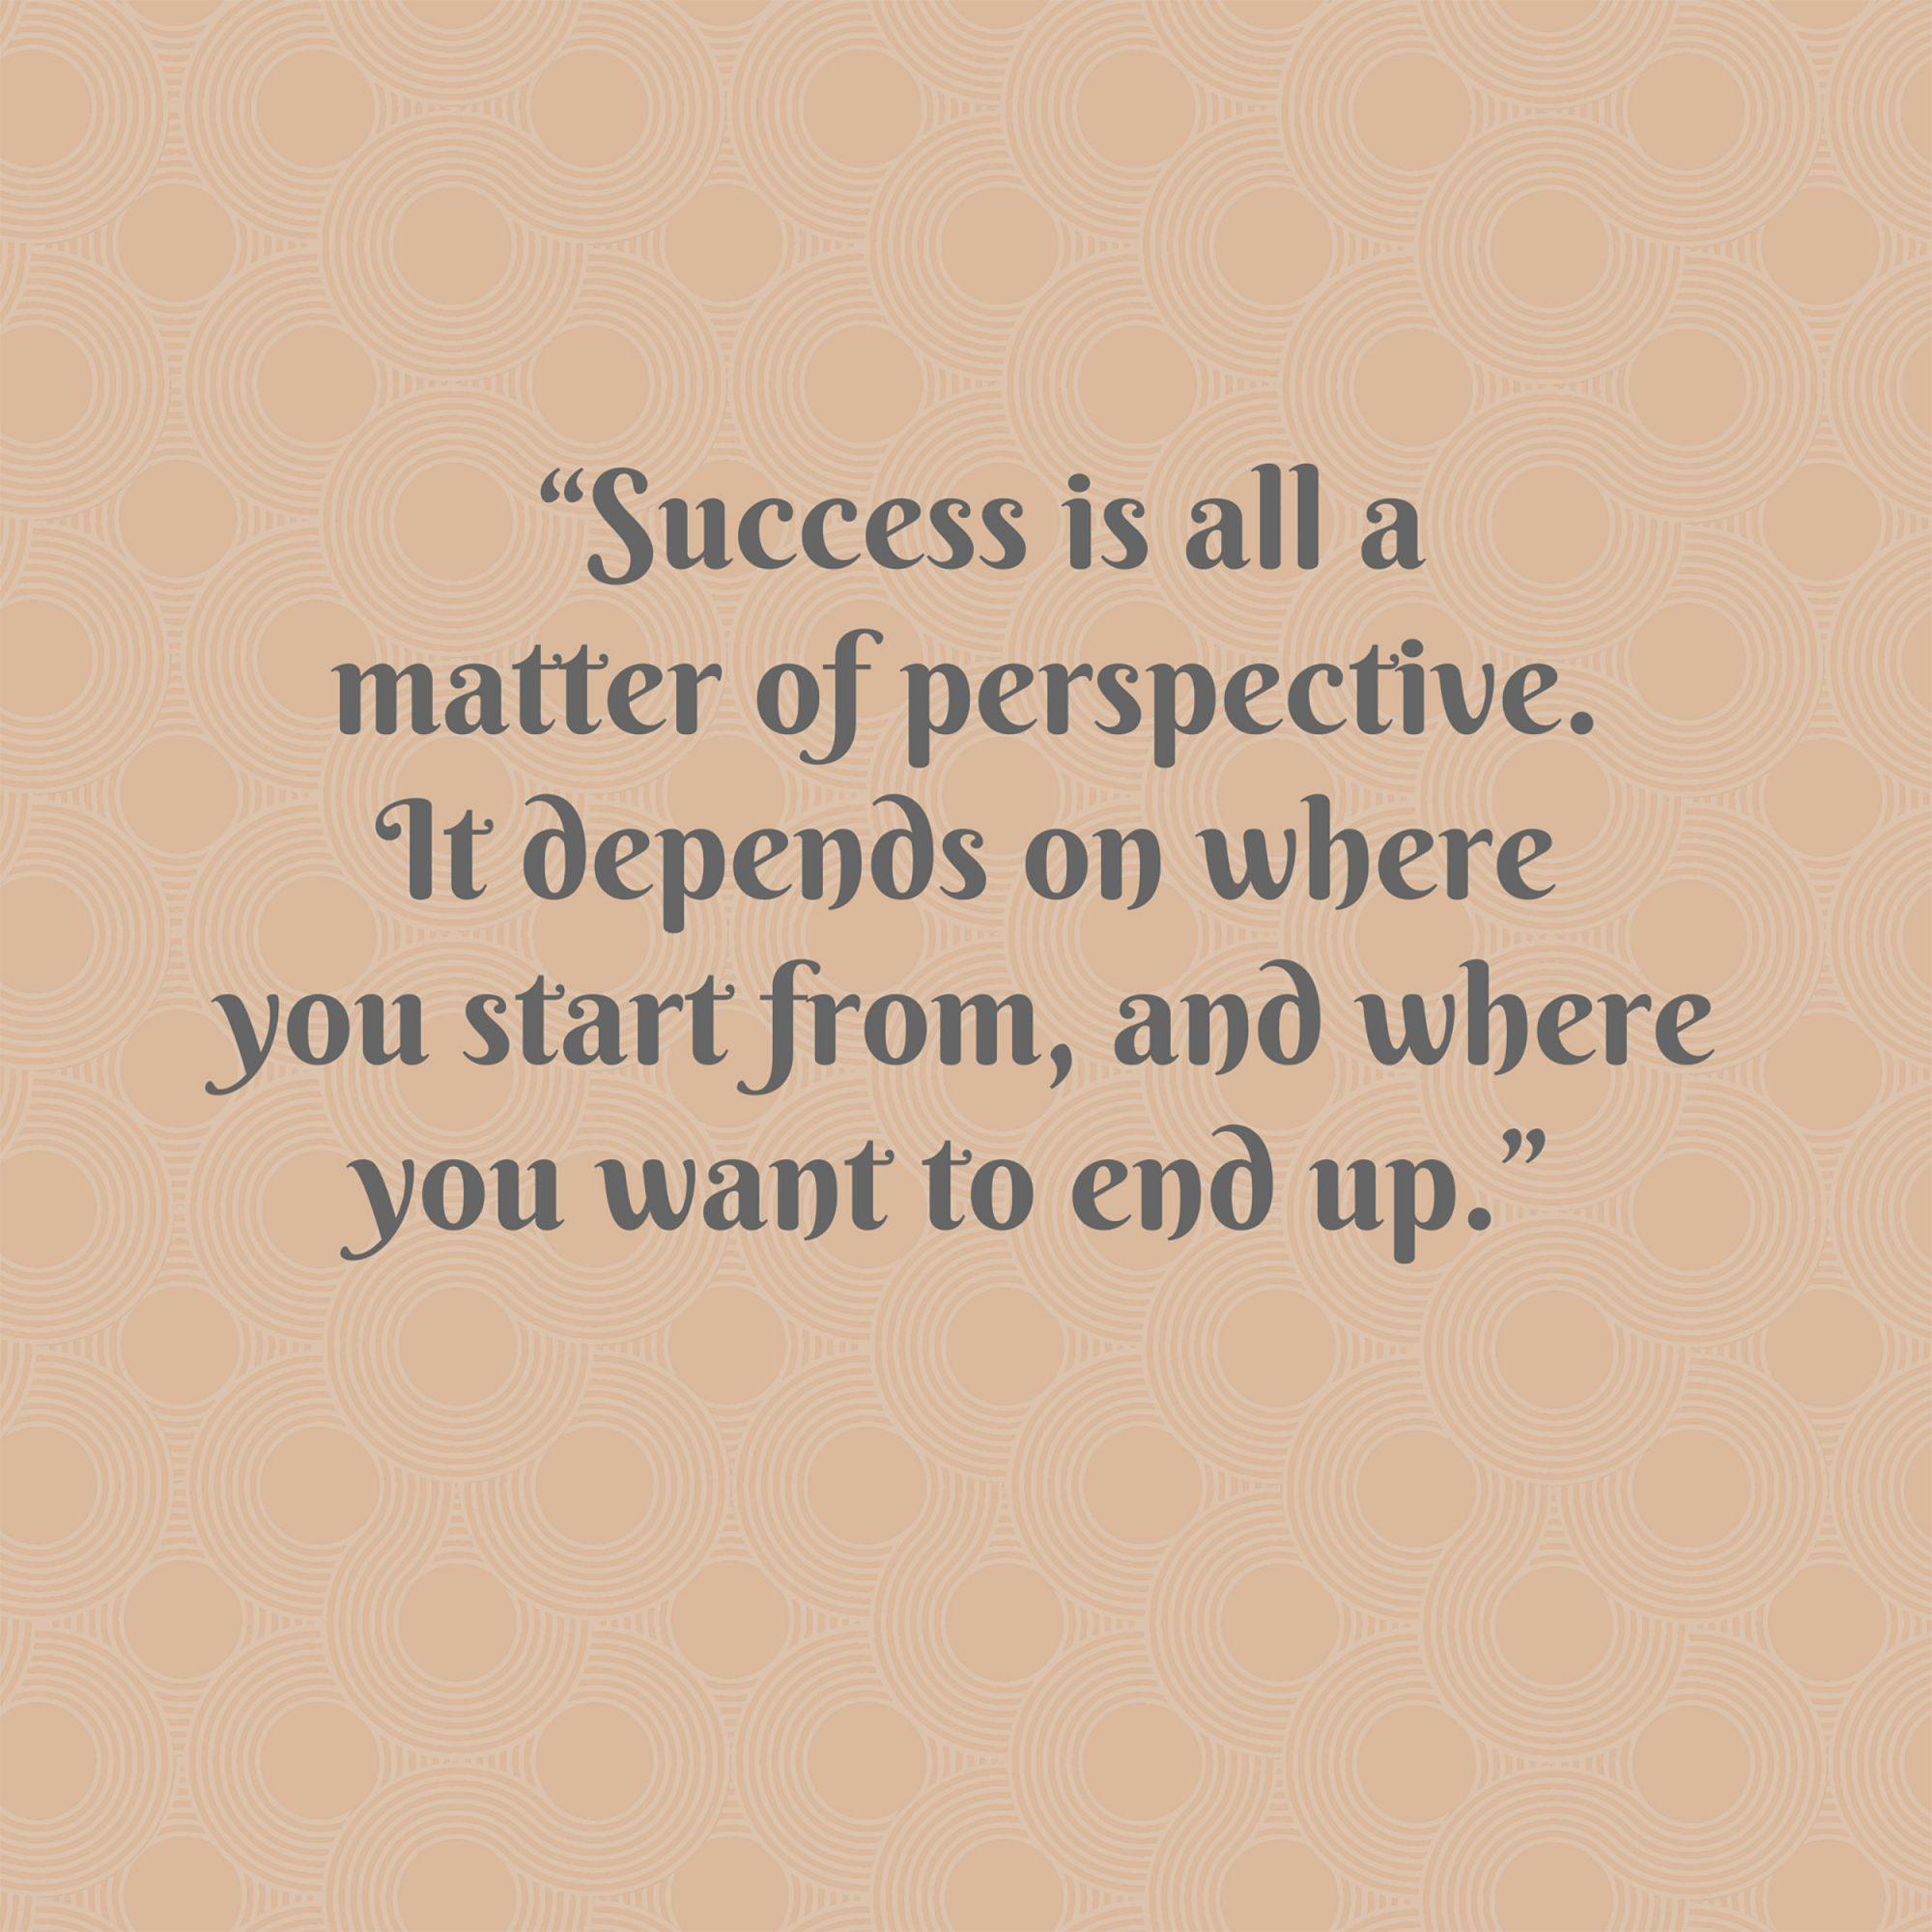 Pat Summitt on Success